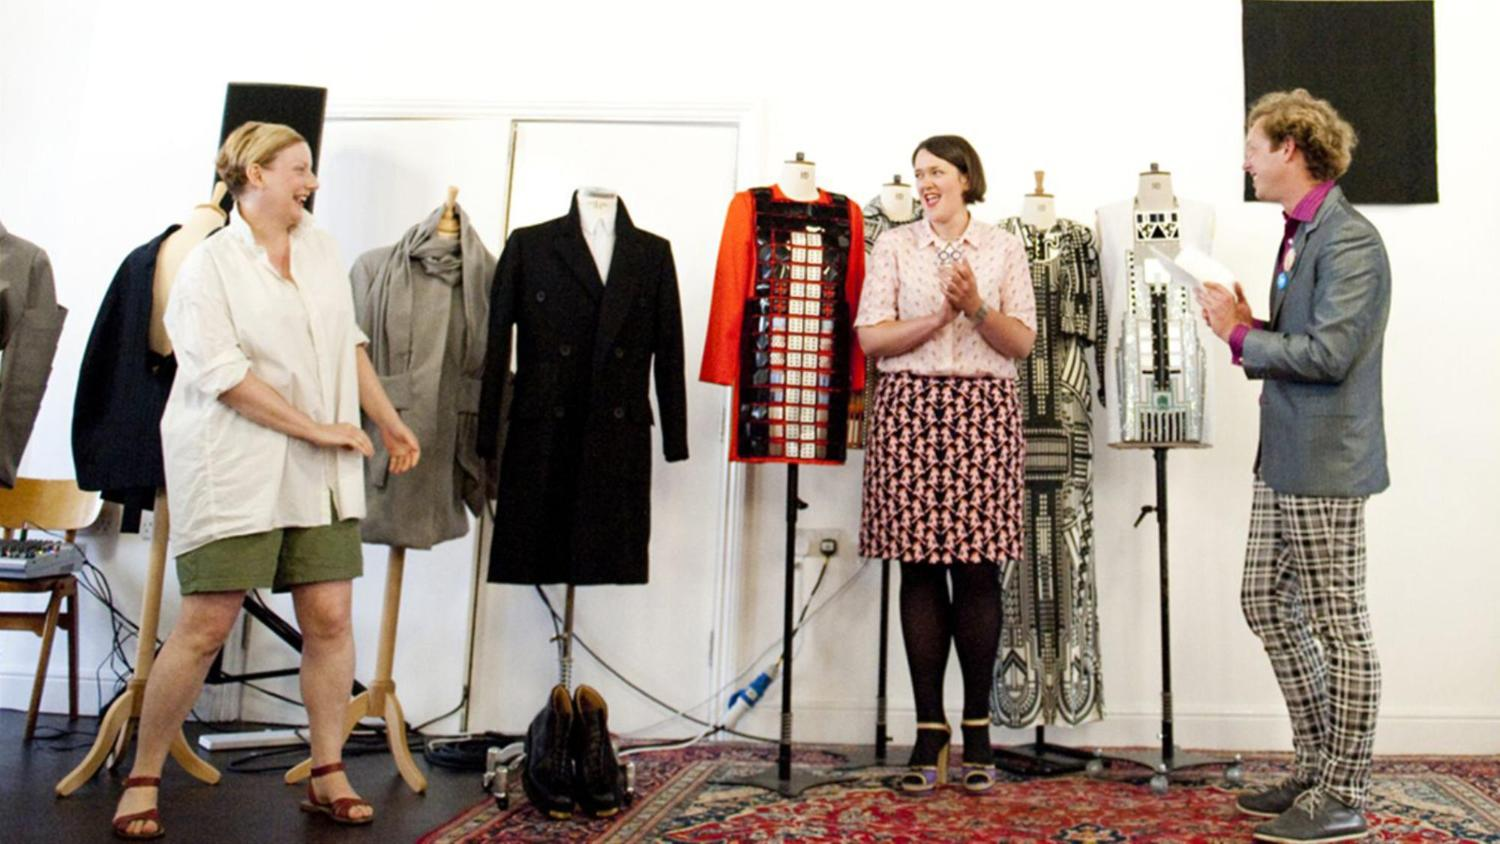 How a 400% rent hike is forcing London's designers out of their studios: http://t.co/ycKSbimZkT #savetramperyfashion http://t.co/UVMKYr80Y7